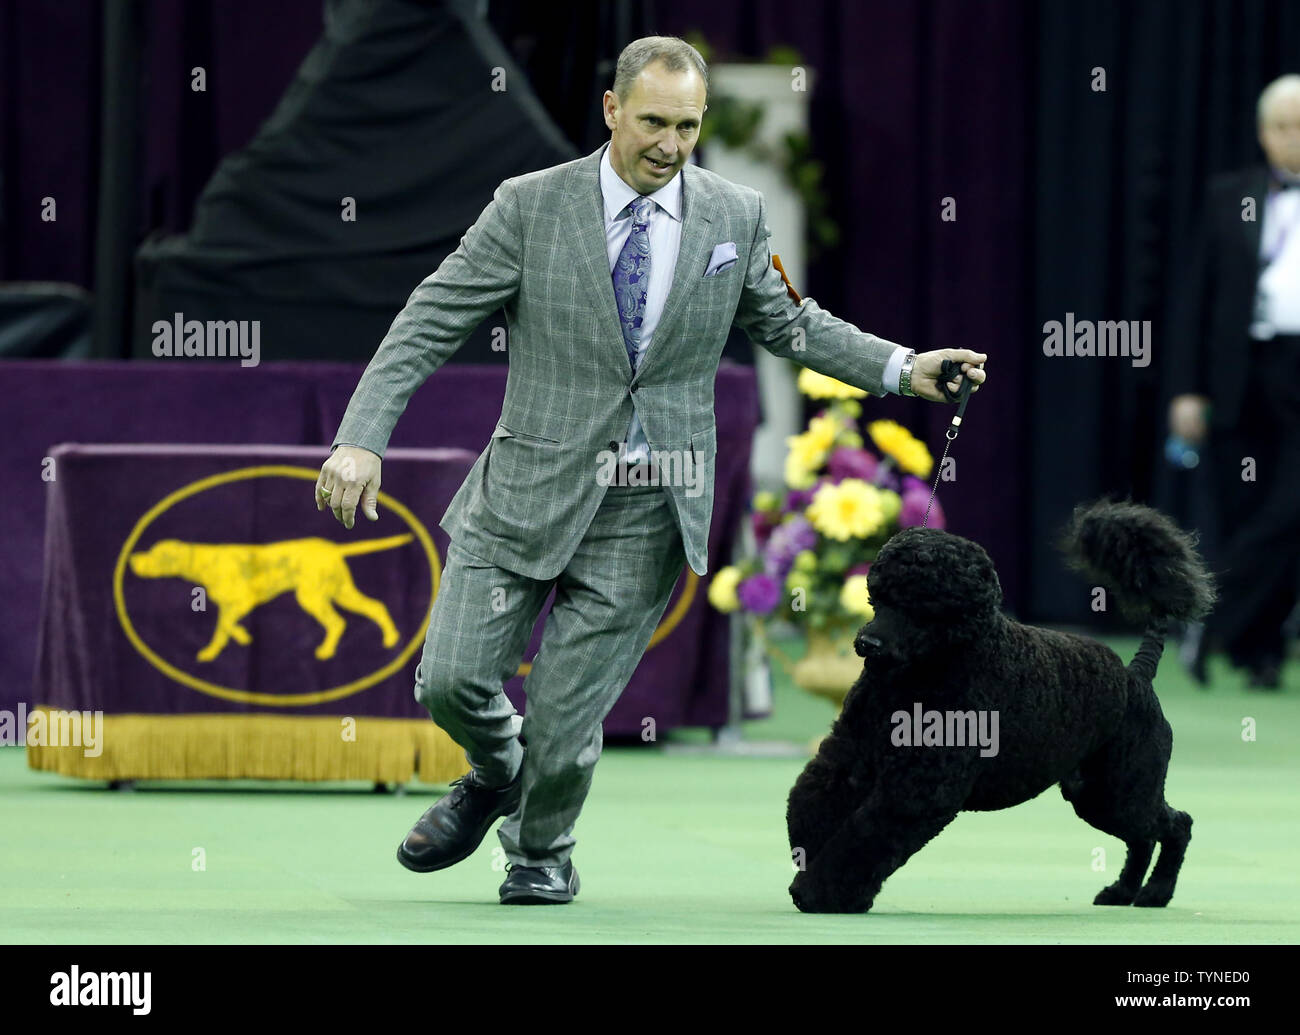 Matisse, a Portuguese Water Dog, competes and wins the Working Group at the 137th Annual Westminster Kennel Club Dog Show at Madison Square Garden in New York City on February 12, 2013.      UPI/John Angelillo Stock Photo